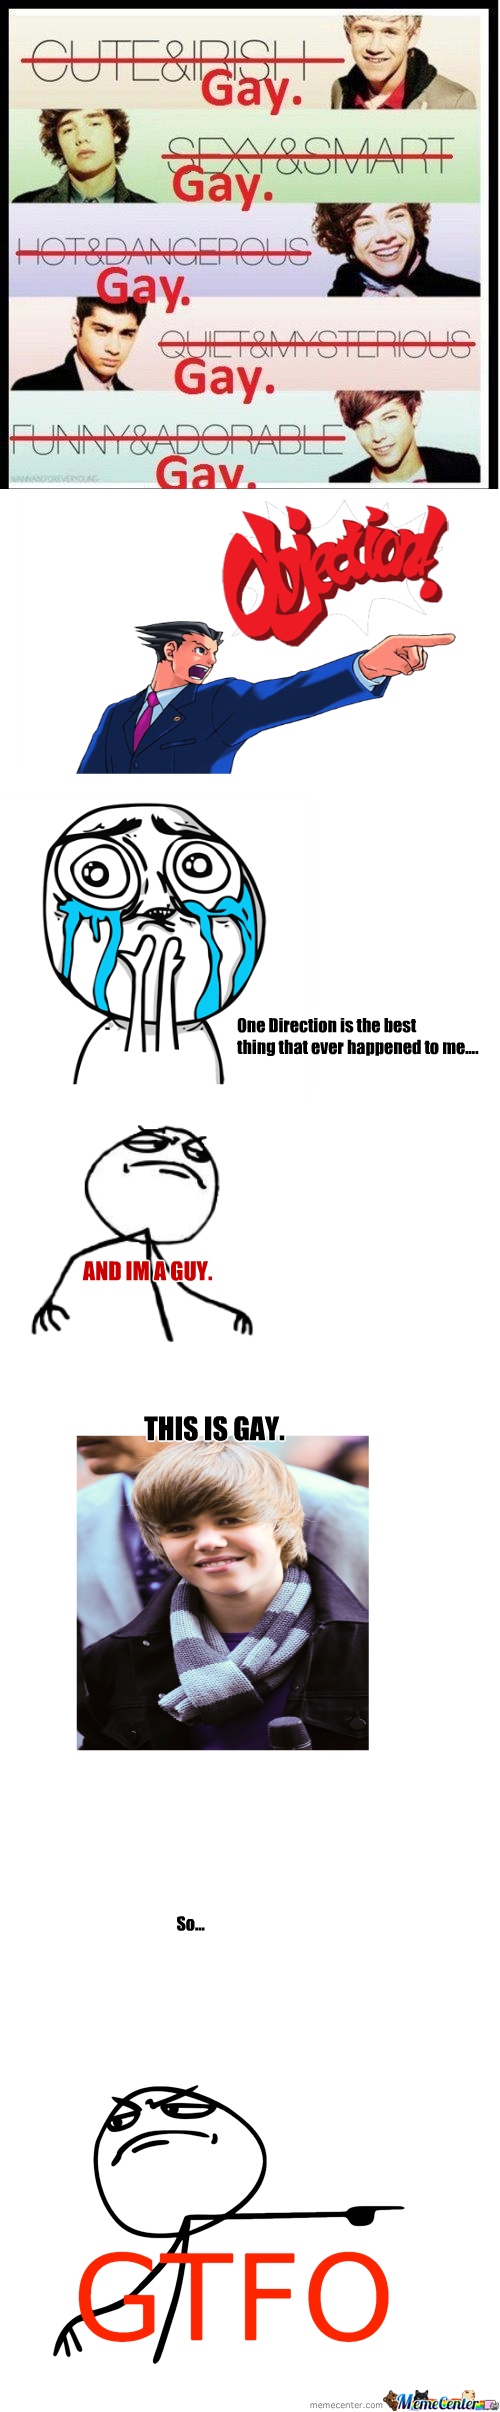 [RMX] One Direction True Story